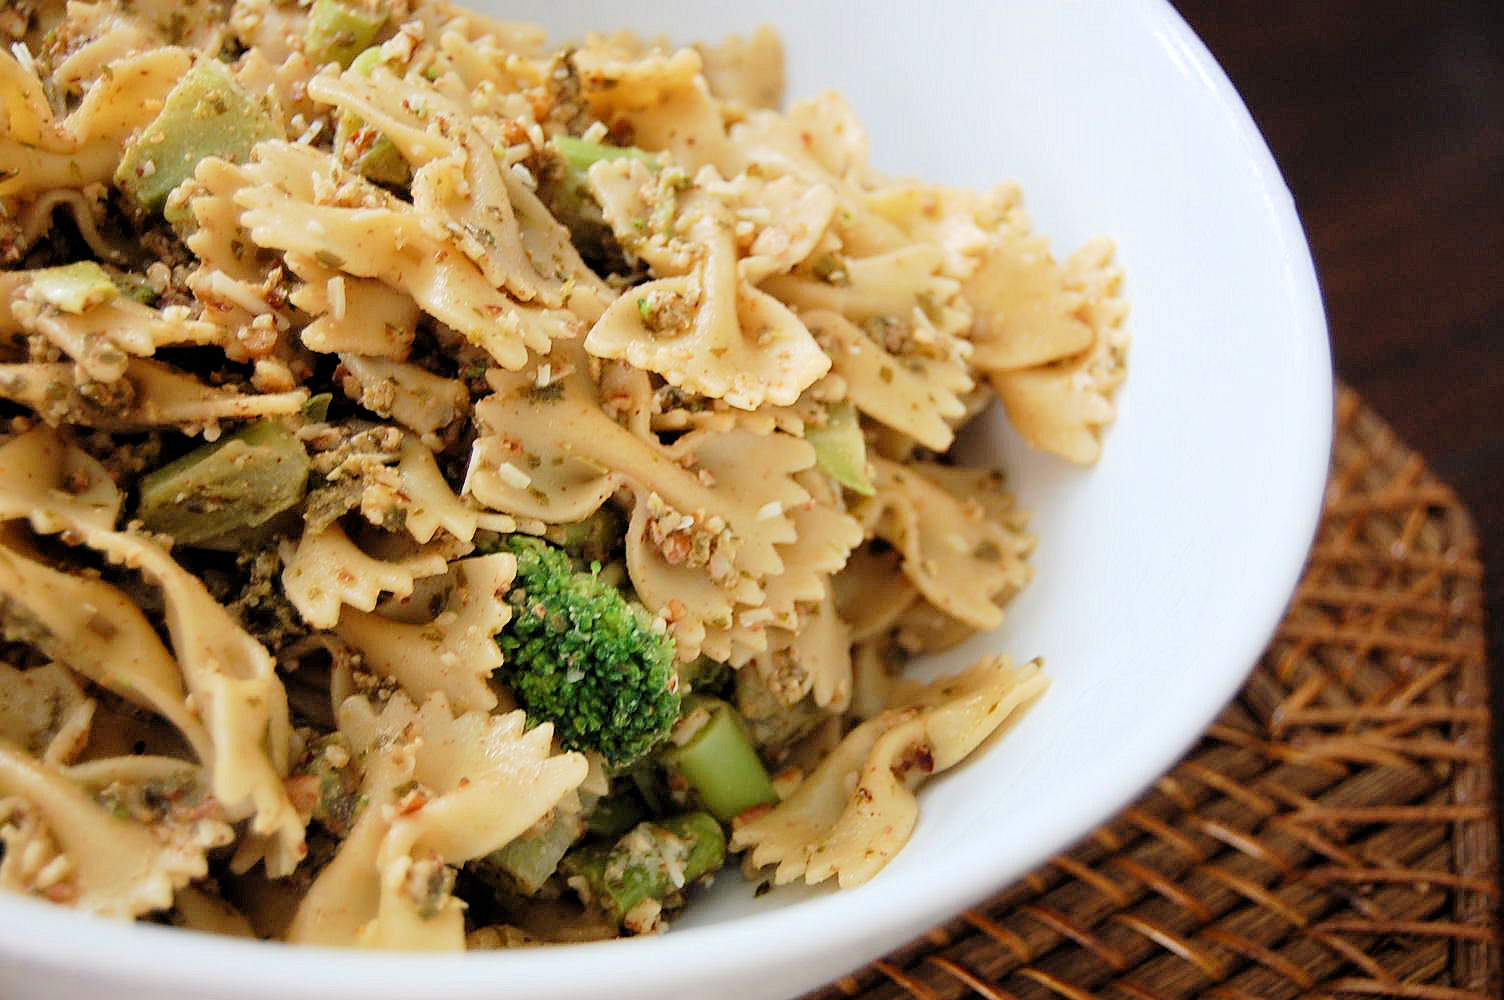 Sage and Pecan Pesto with Roasted Brocolli tossed with pecan crumbs